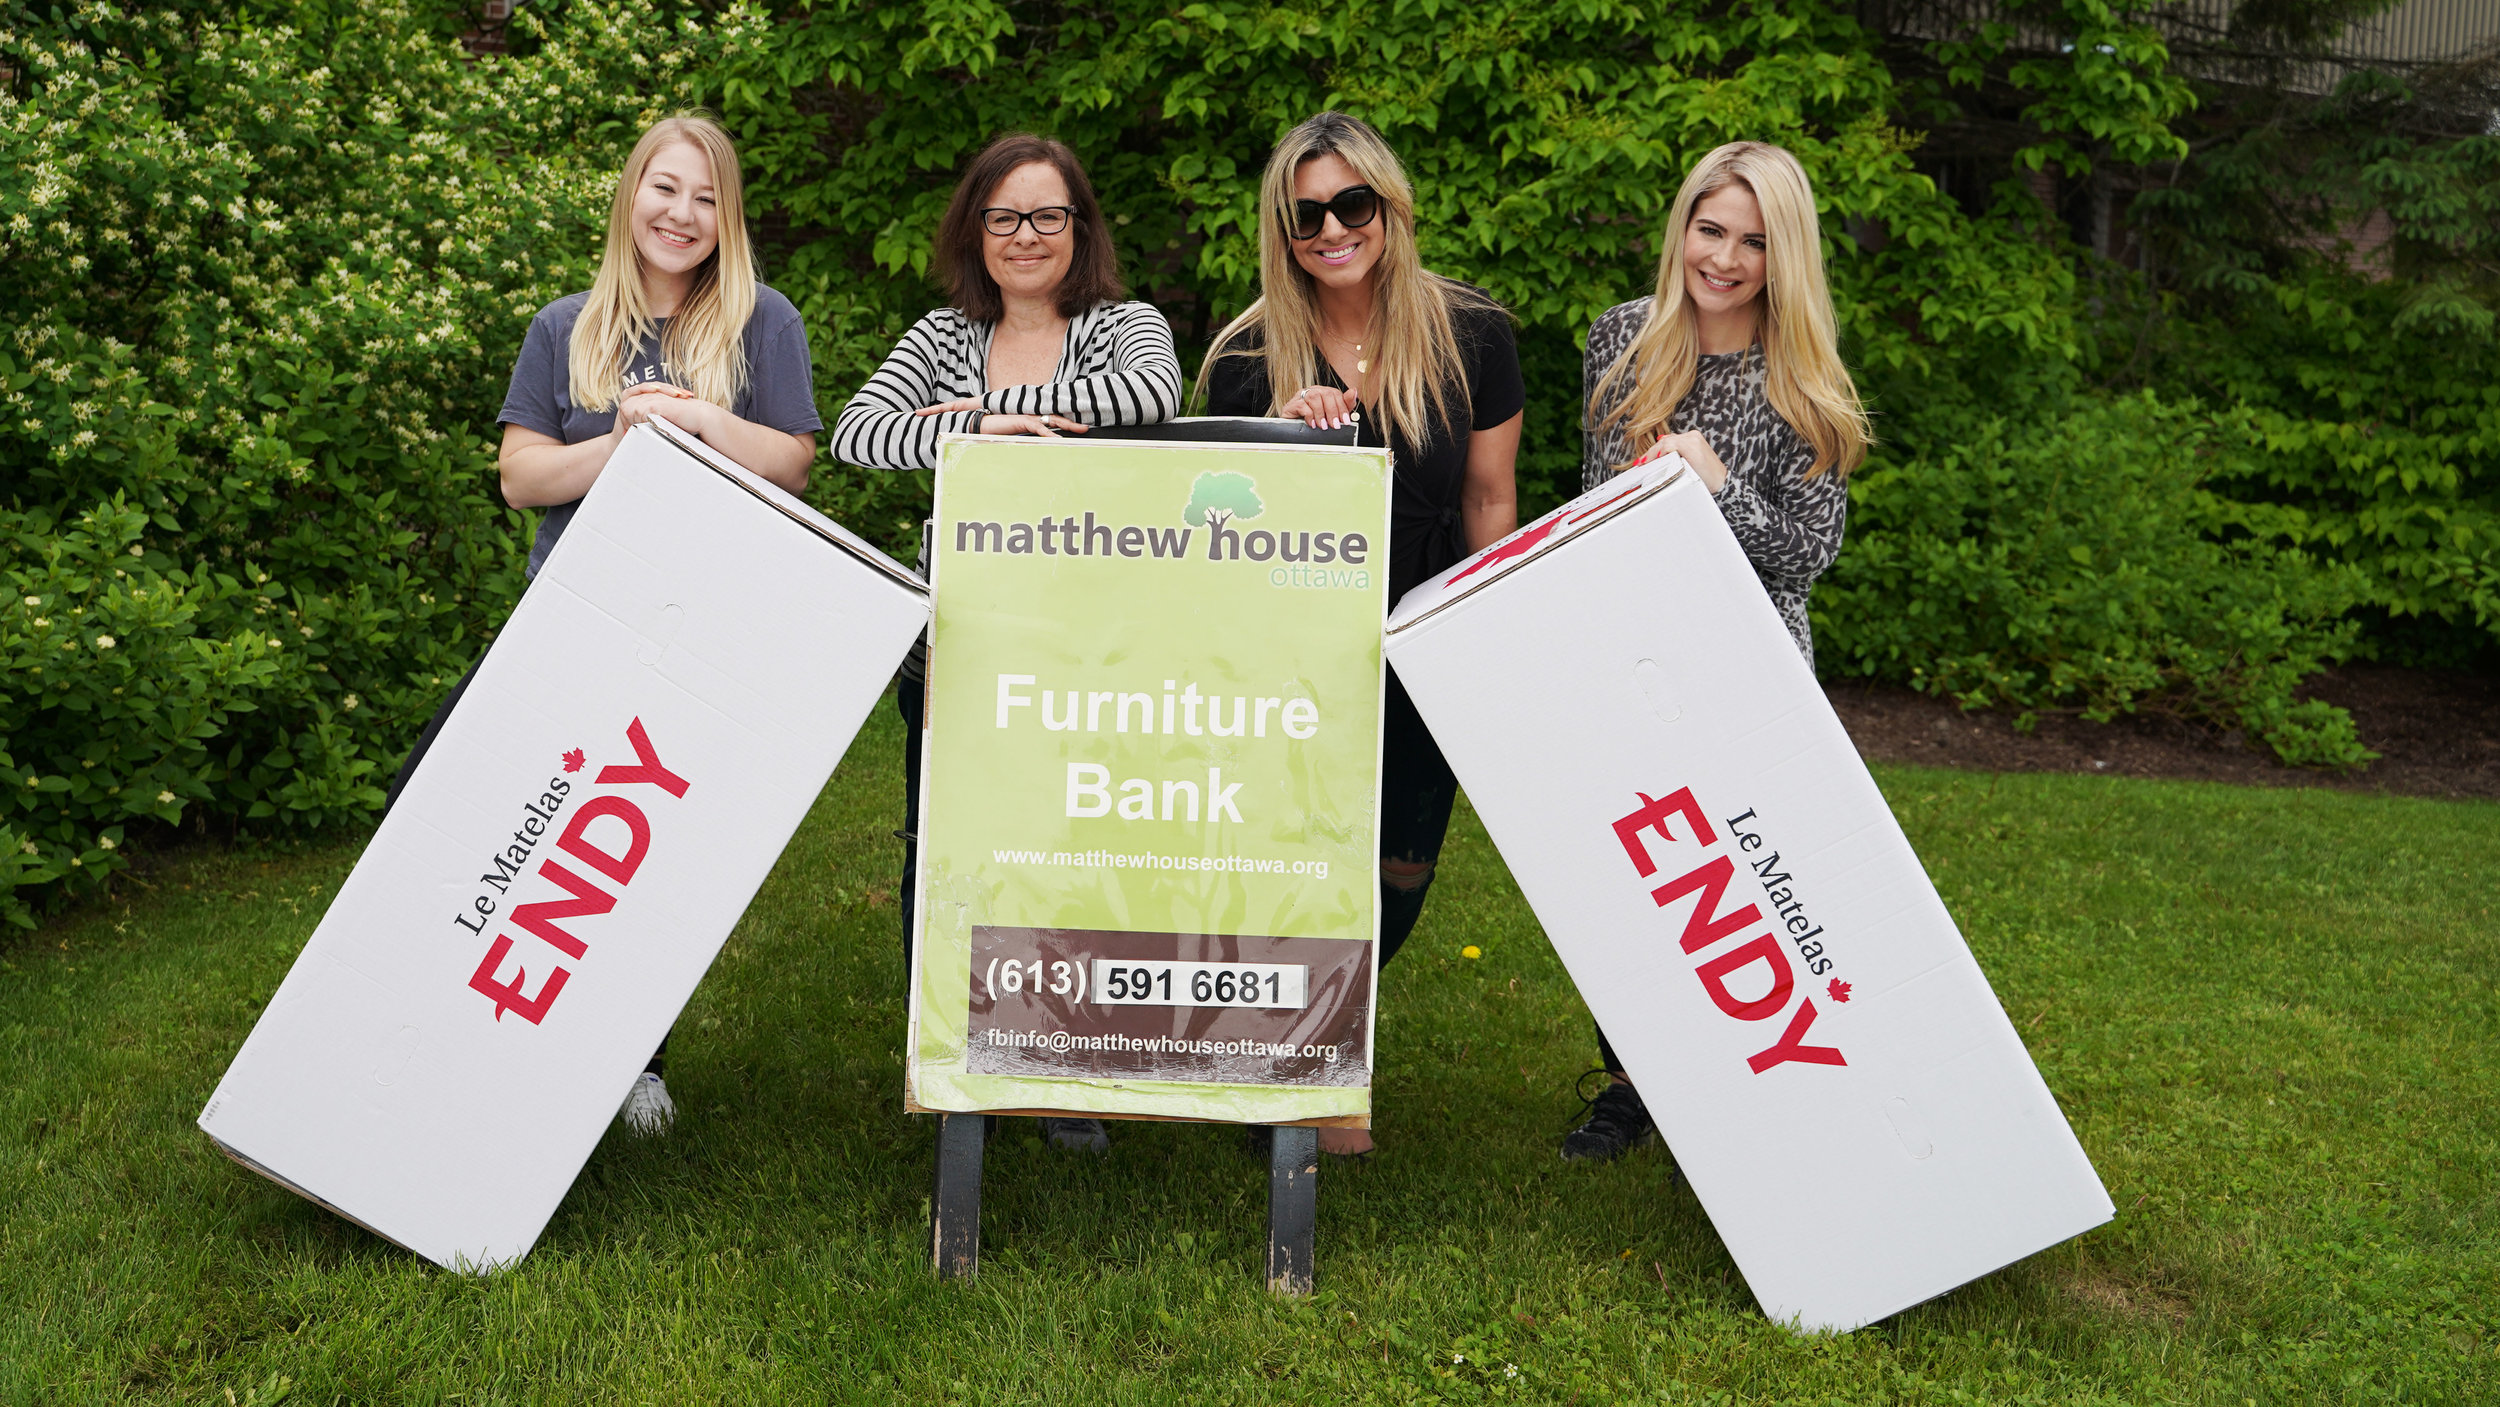 Left to right: Vicki Dignard, Fran Laurendeau, Loukia Zigoumis, and Melissa Lamb spend their day volunteering with Endy Canada and Matthew House Ottawa Furniture Bank.